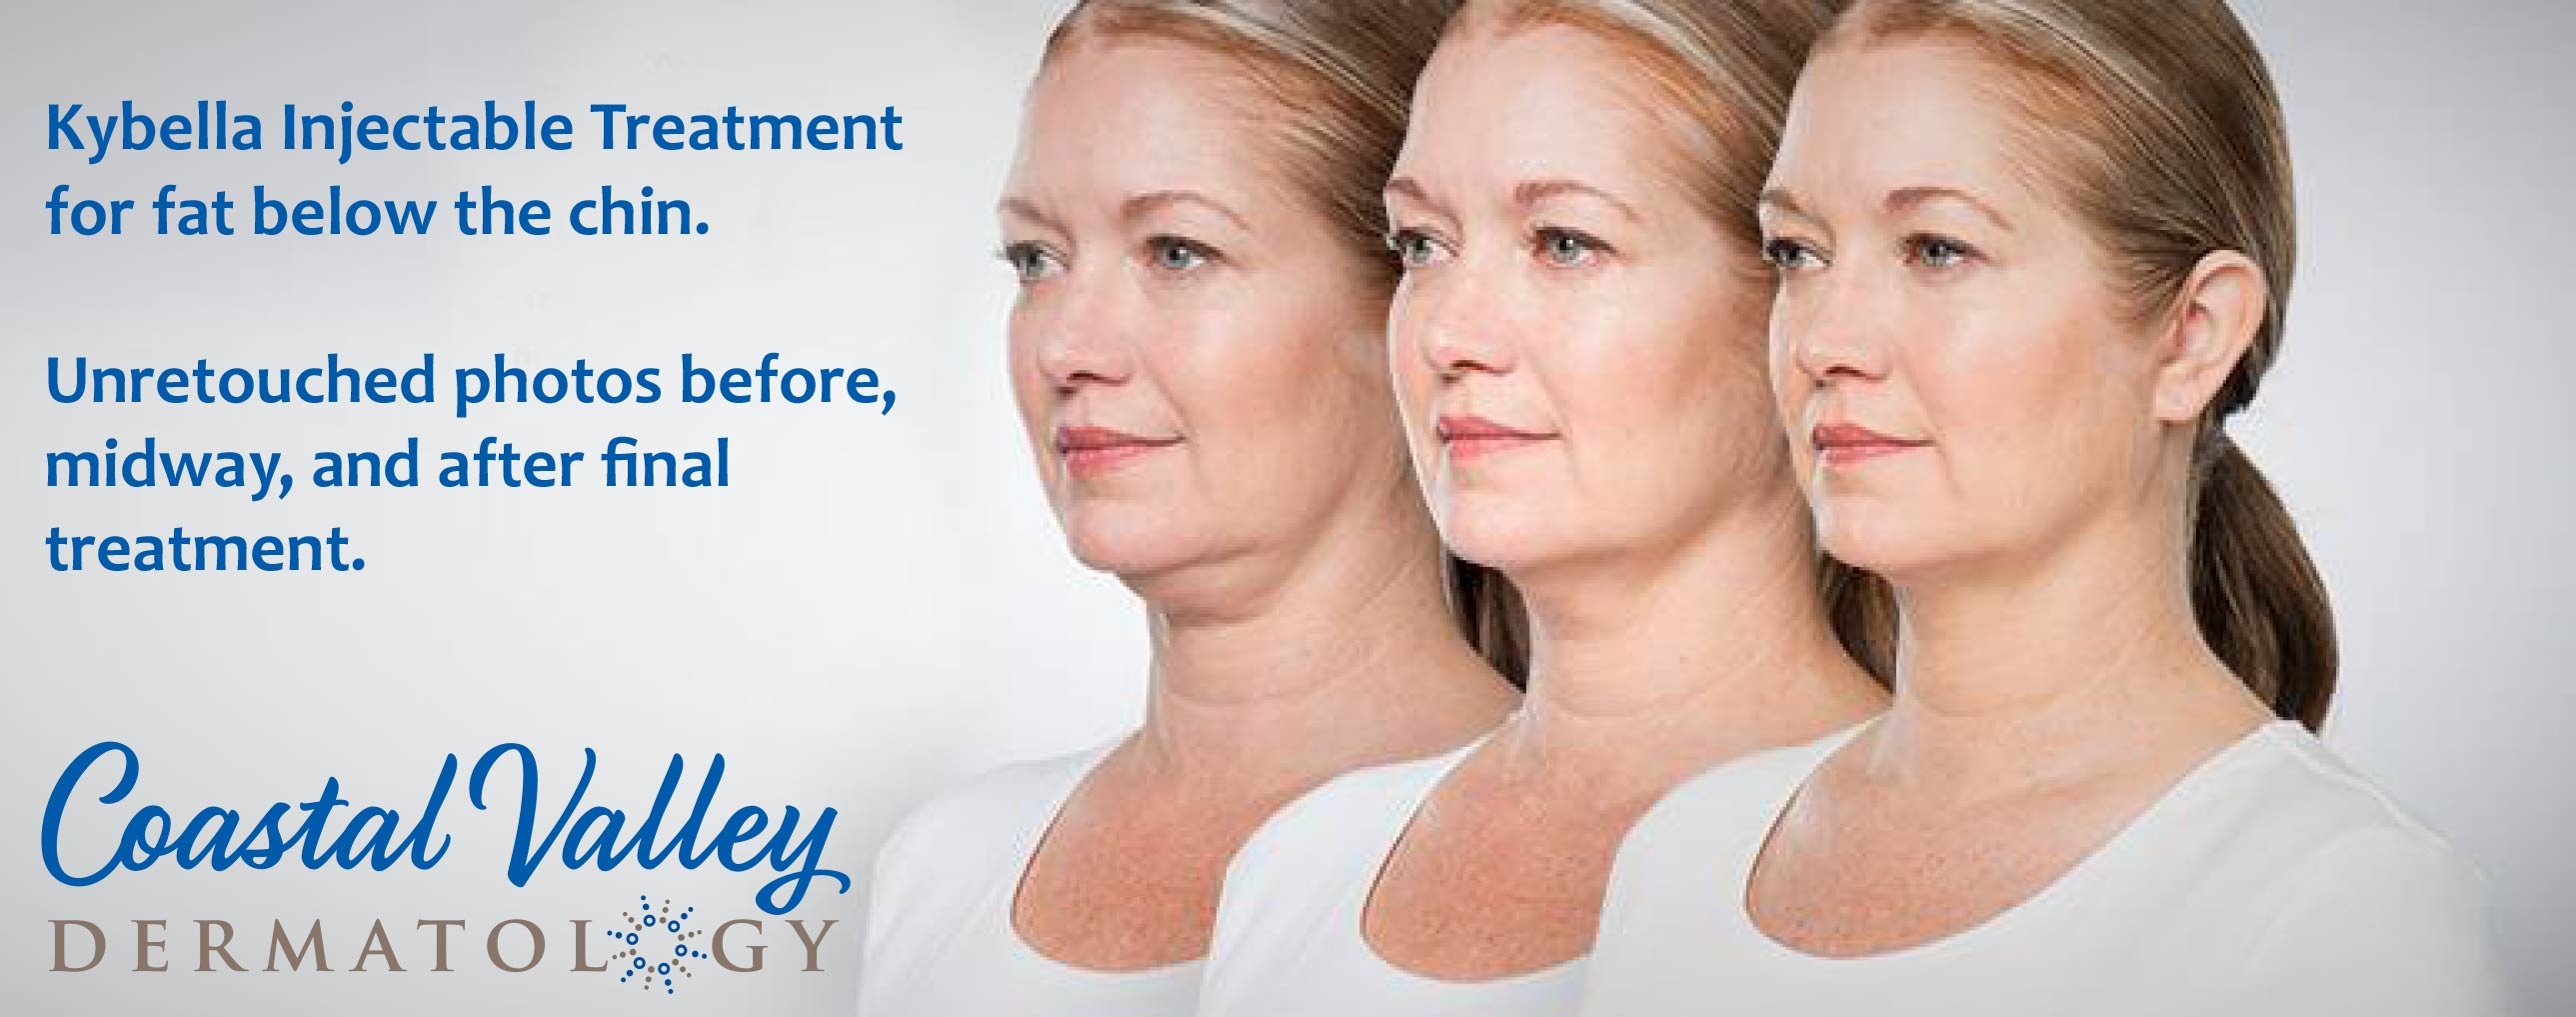 coastal-valley-dermatology-carmel-kybella-treat-chin-fat-photo